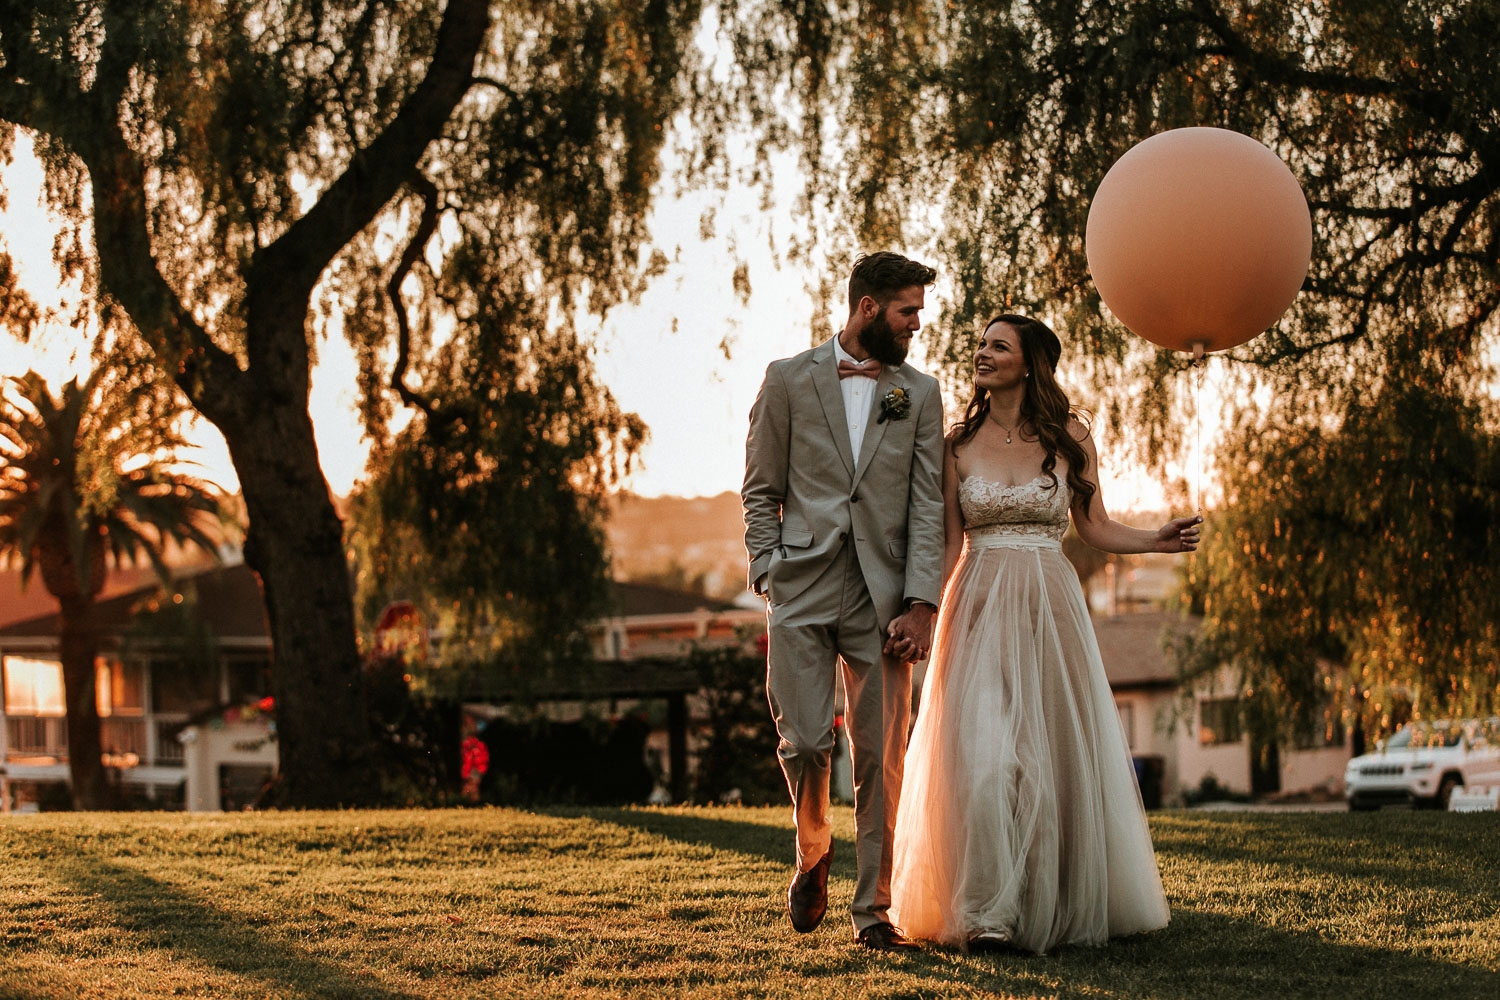 Heritage Park   It was a perfect outdoor wedding; dreamy afternoon light + whimsical boho touch. The bride and groom chose Heritage Park in San Diego for their fall wedding. The day was filled love, tacos and ice cream!     View Gallery